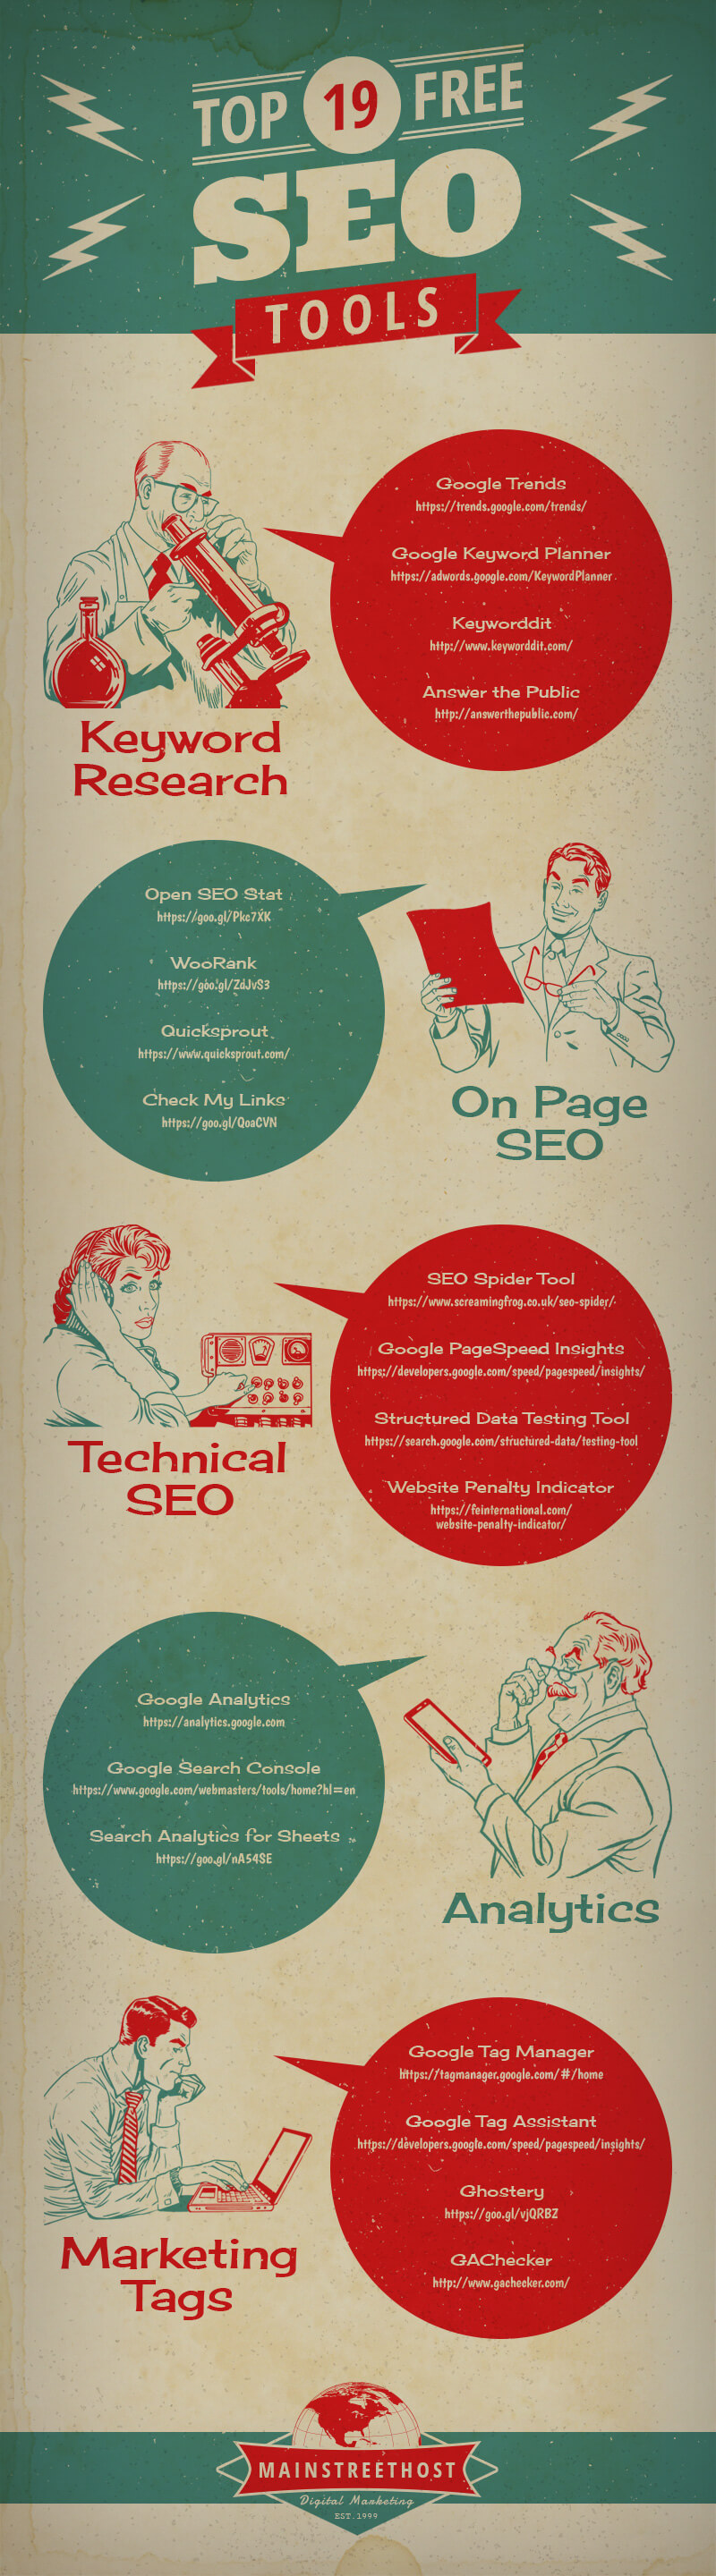 Infographic of The Top 19 Free SEO Tools